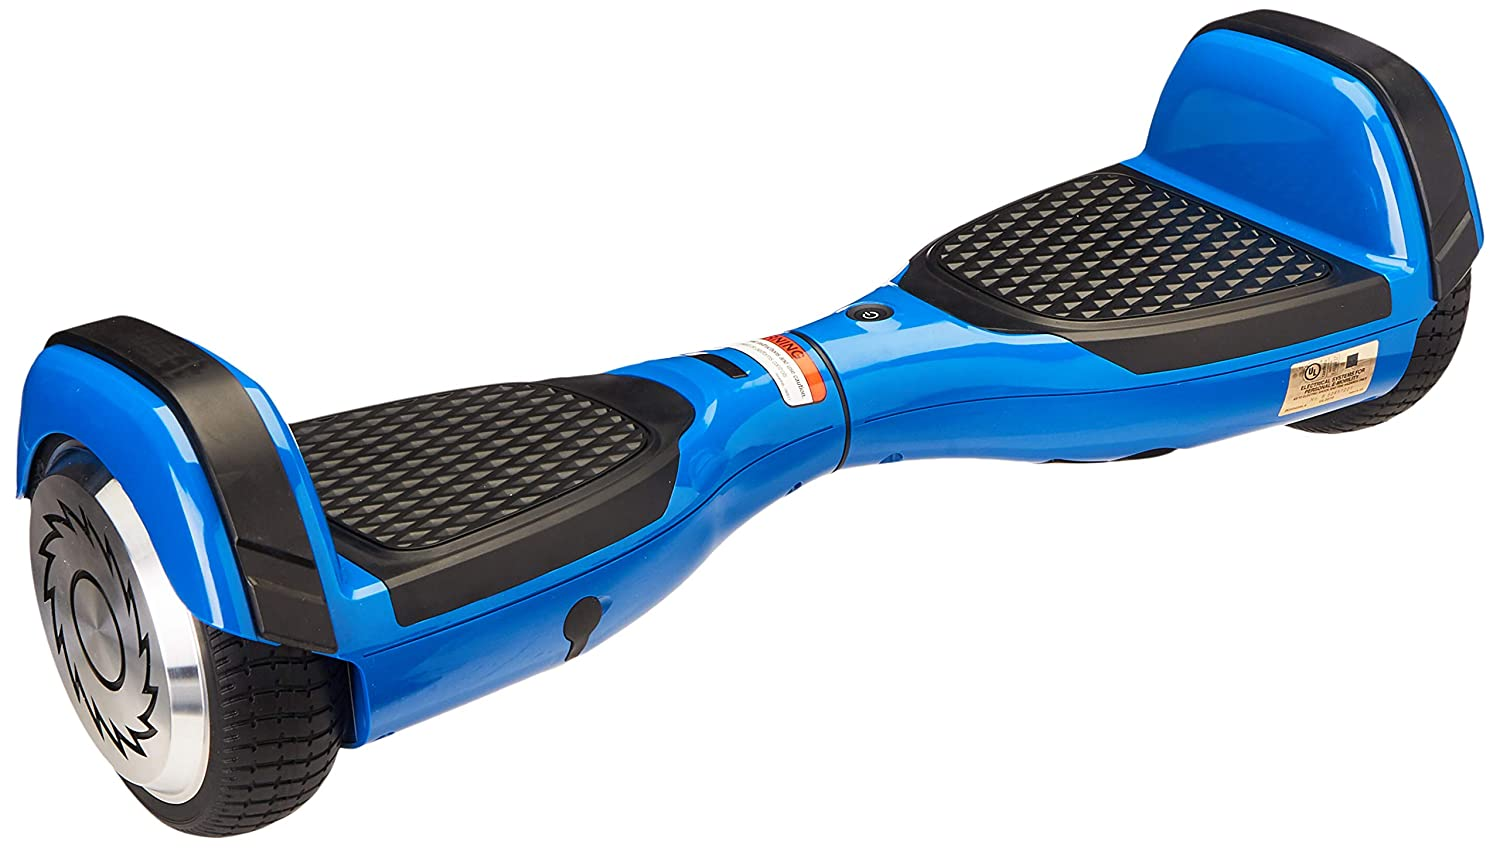 Amazon.com: Razor Hovertrax 2.0 Hoverboard - Patinete ...